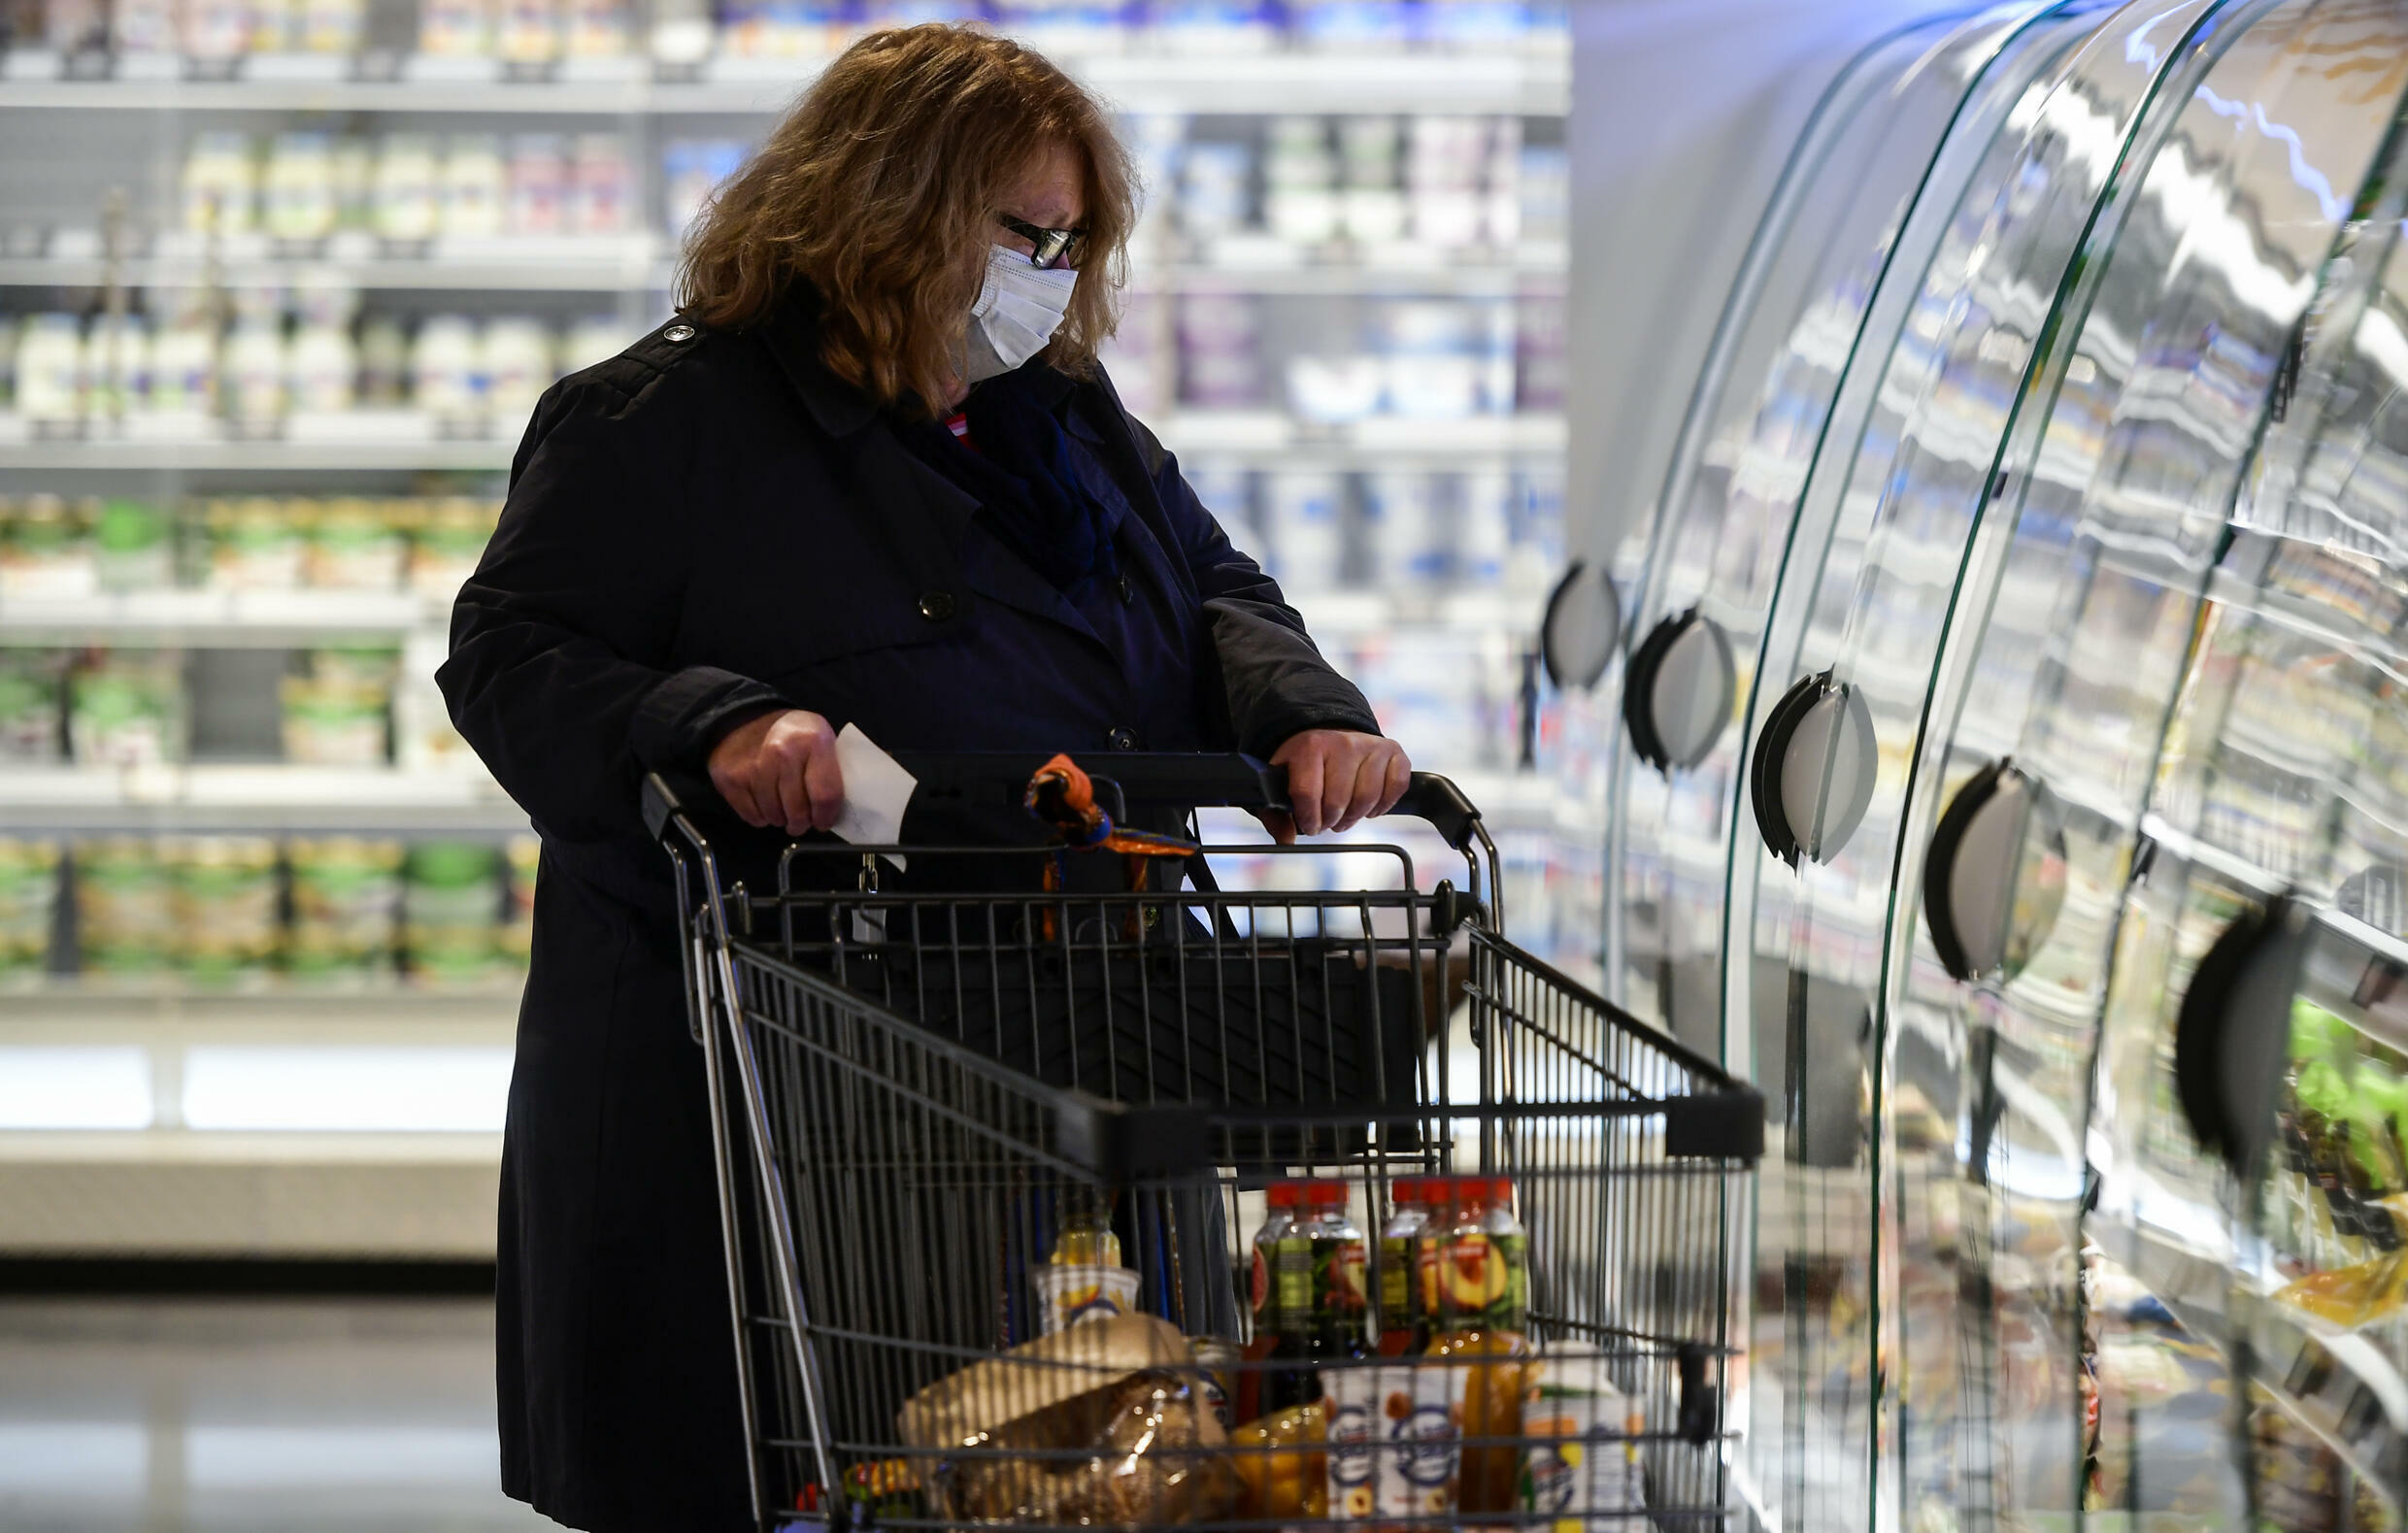 Europeans are paying more for everything as data shows inflation has hit its highest level in a decade